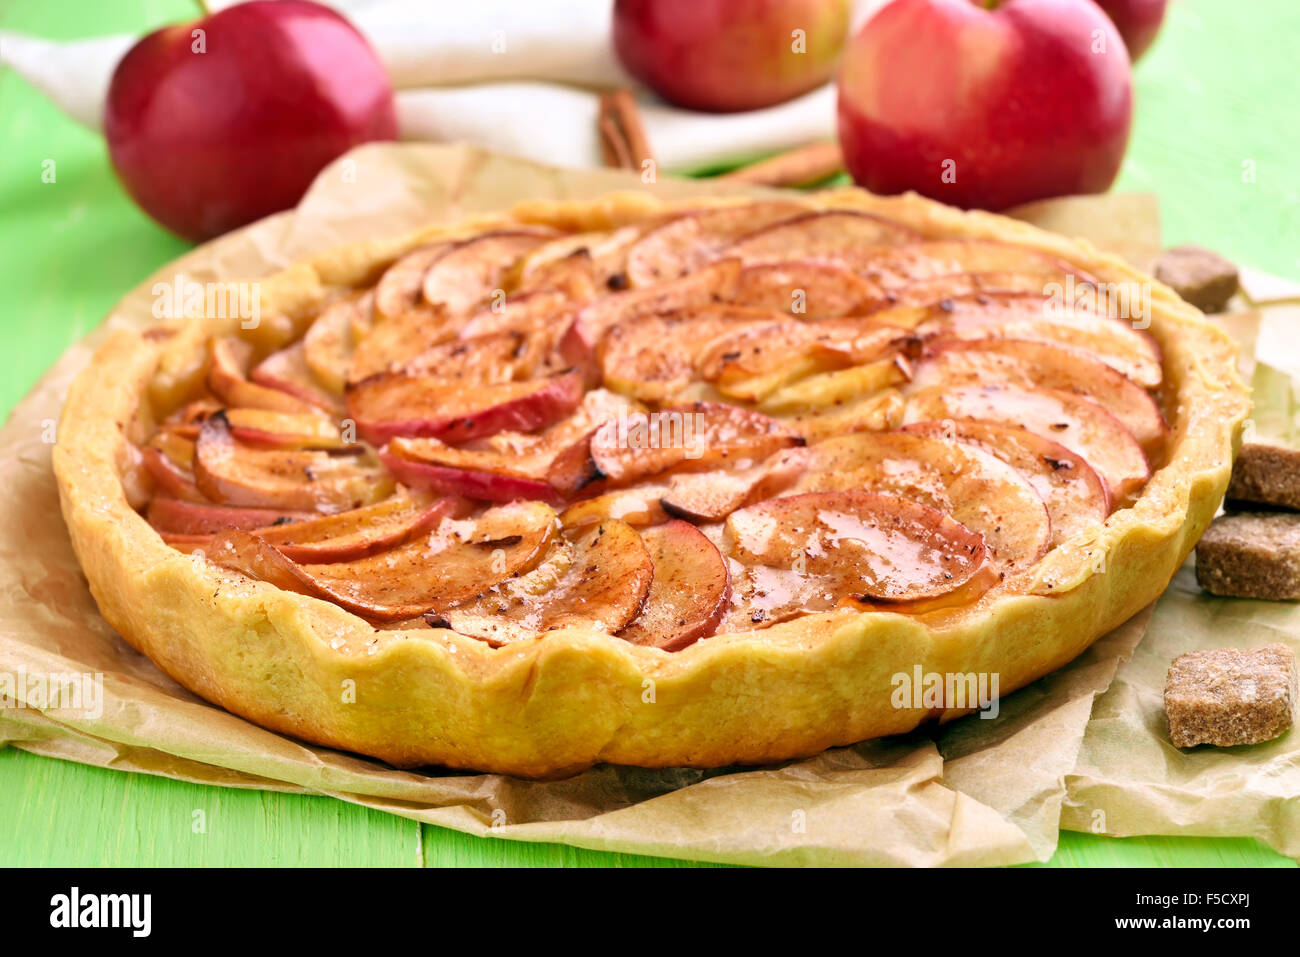 Apple pie on baking paper, close up view Stock Photo